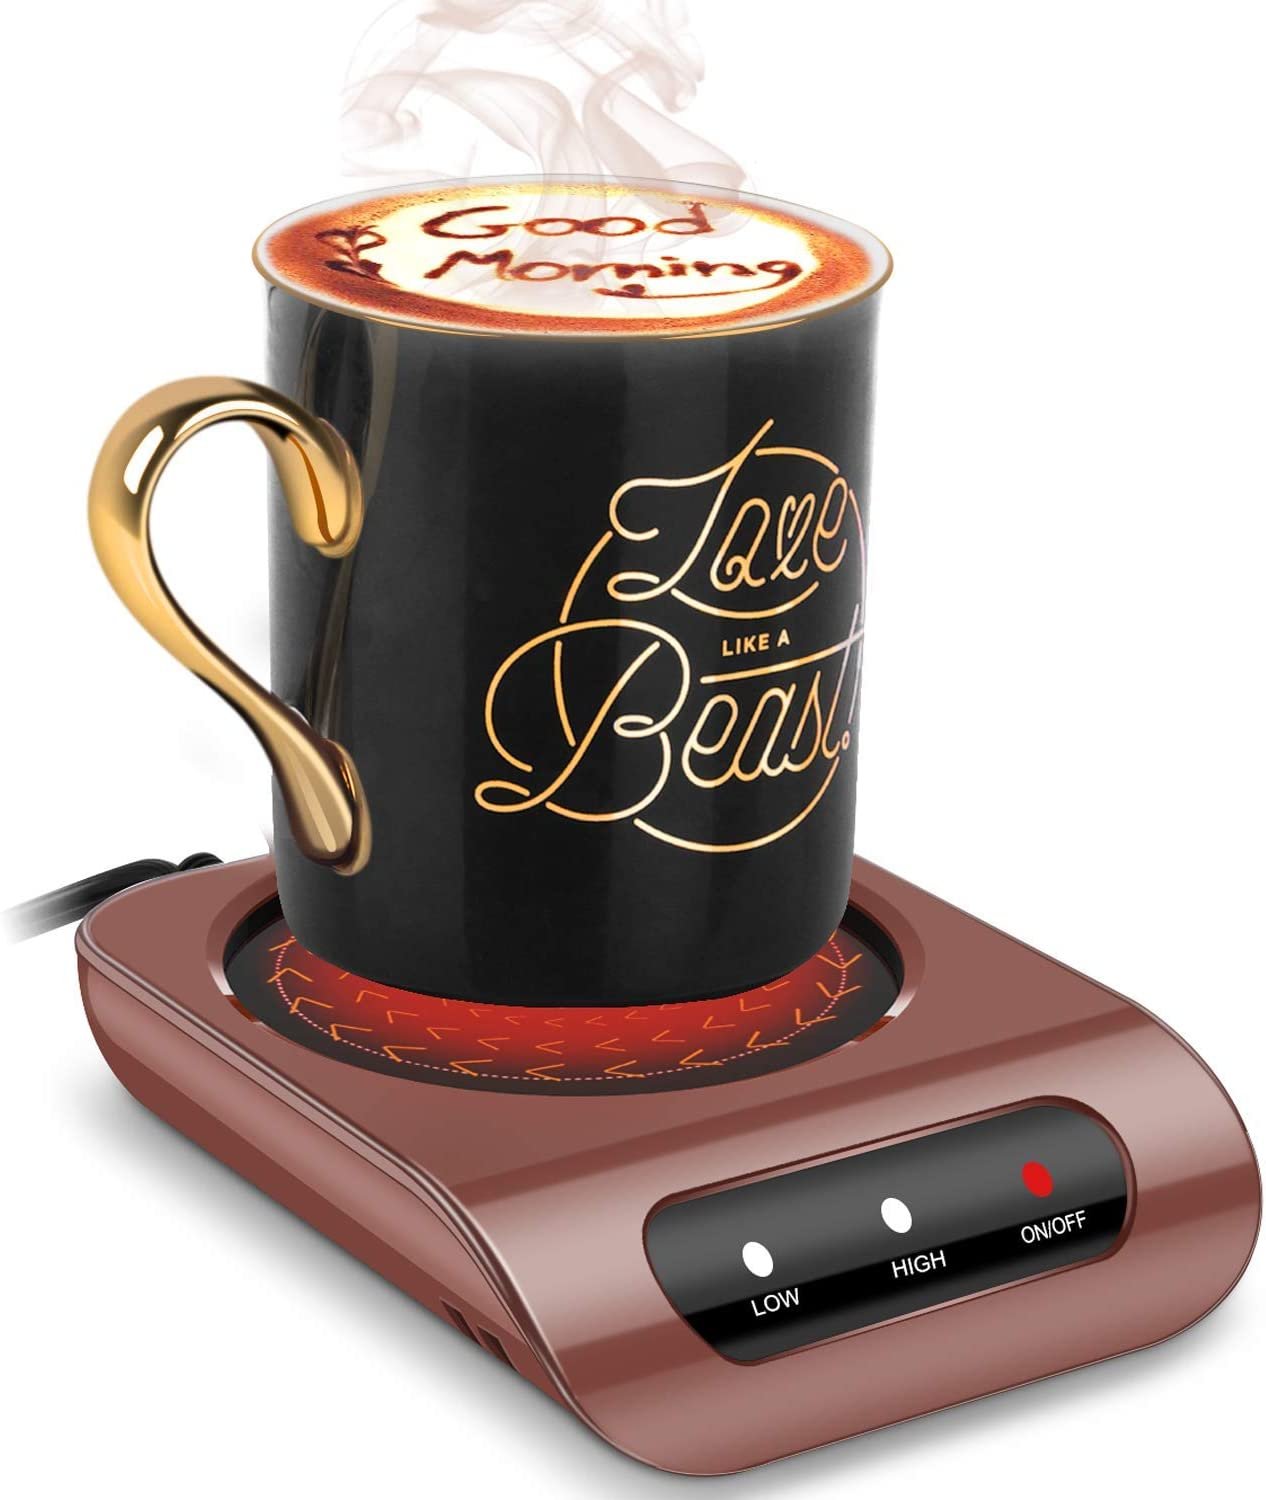 BONTIME Mug Warmer - 35 Watt Coffee Warmer for Desk with Auto Shut Off, Easy to Use and Clean, Enjoy Warm Coffee & Tea Anytime at Home and Office